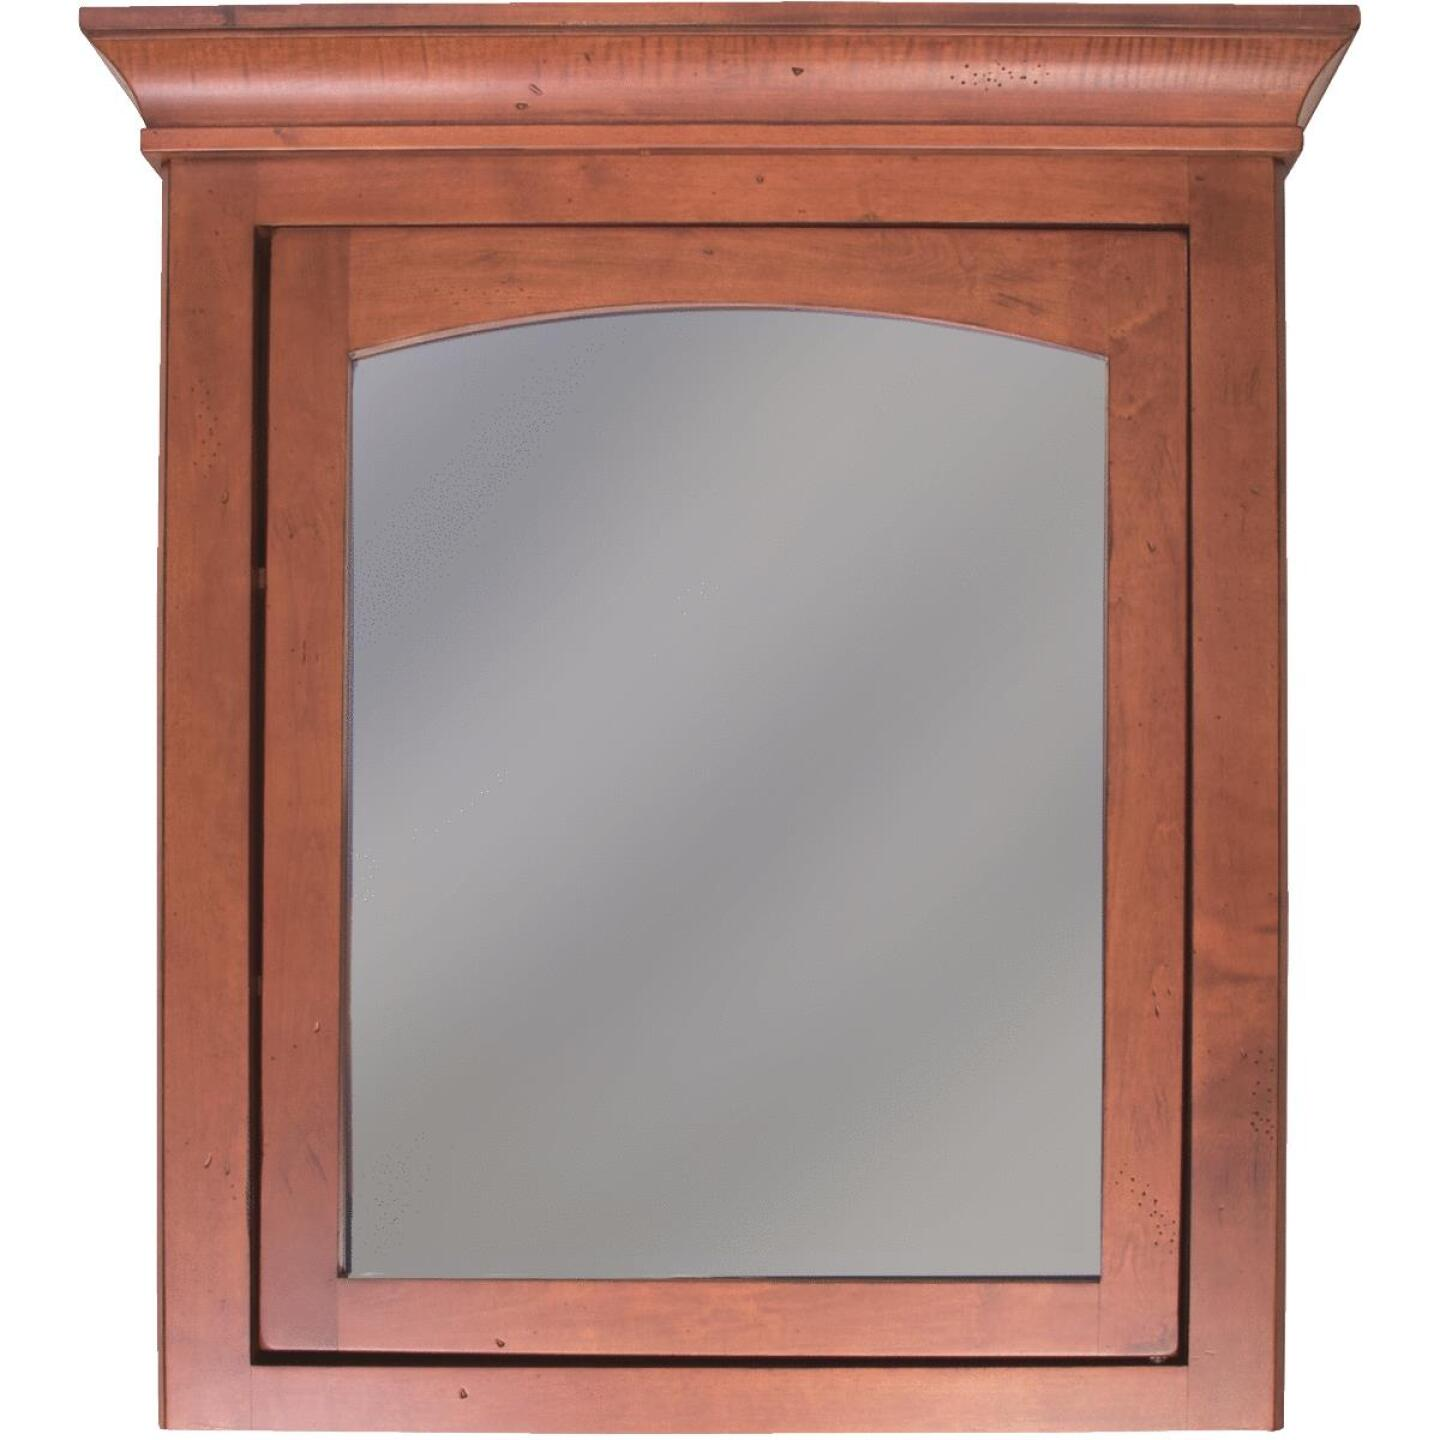 Sunny Wood Expressions Cinnamon 27 In. W x 32 In. H x 6-1/2 In. D Single Mirror Surface Mount Medicine Cabinet Image 1